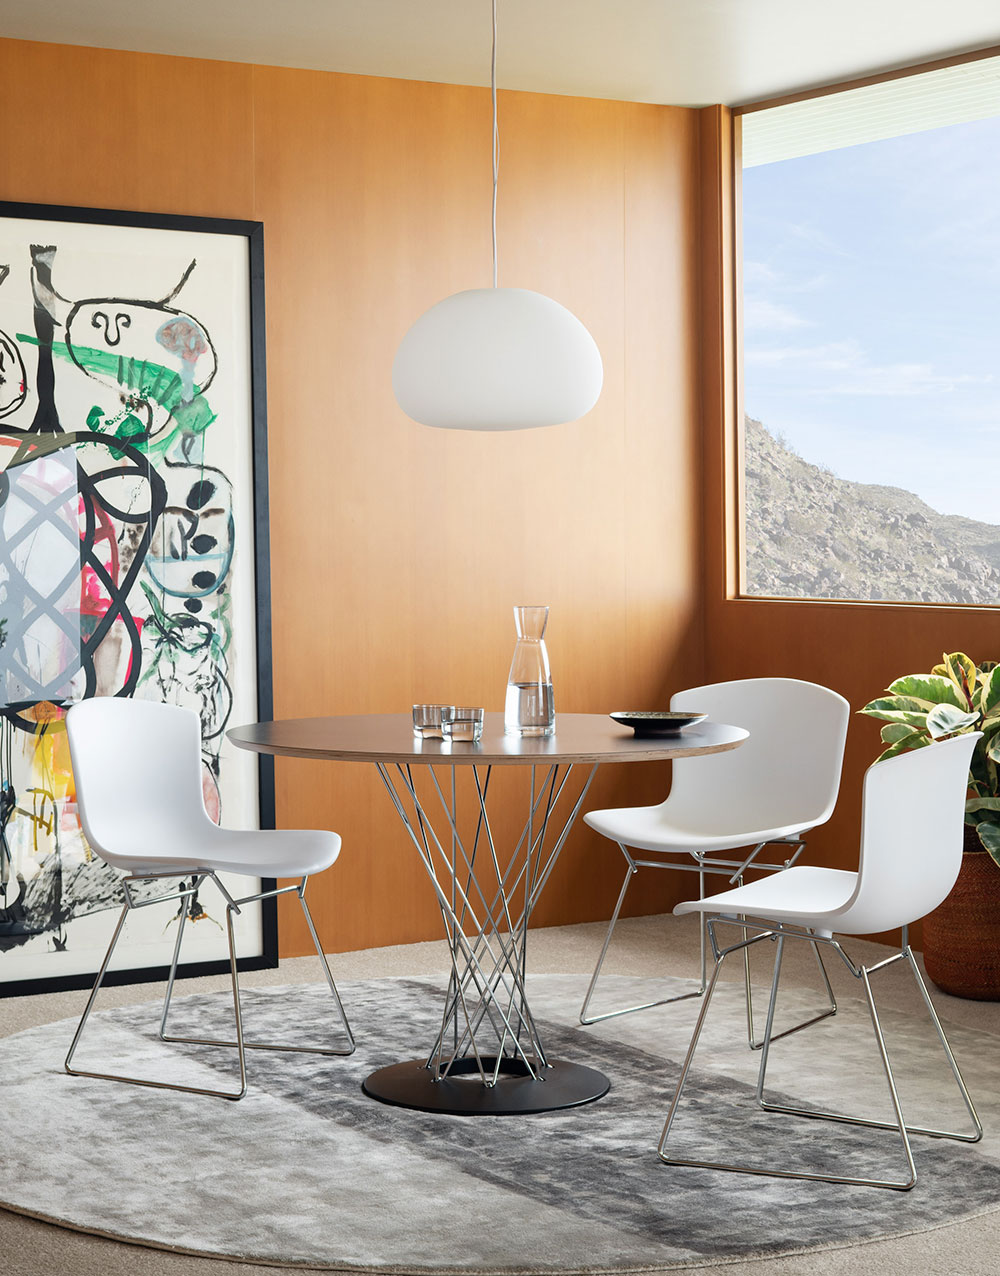 Knoll Dining Room Furniture with Cyclone Table and Bertoia Molded Side Chair